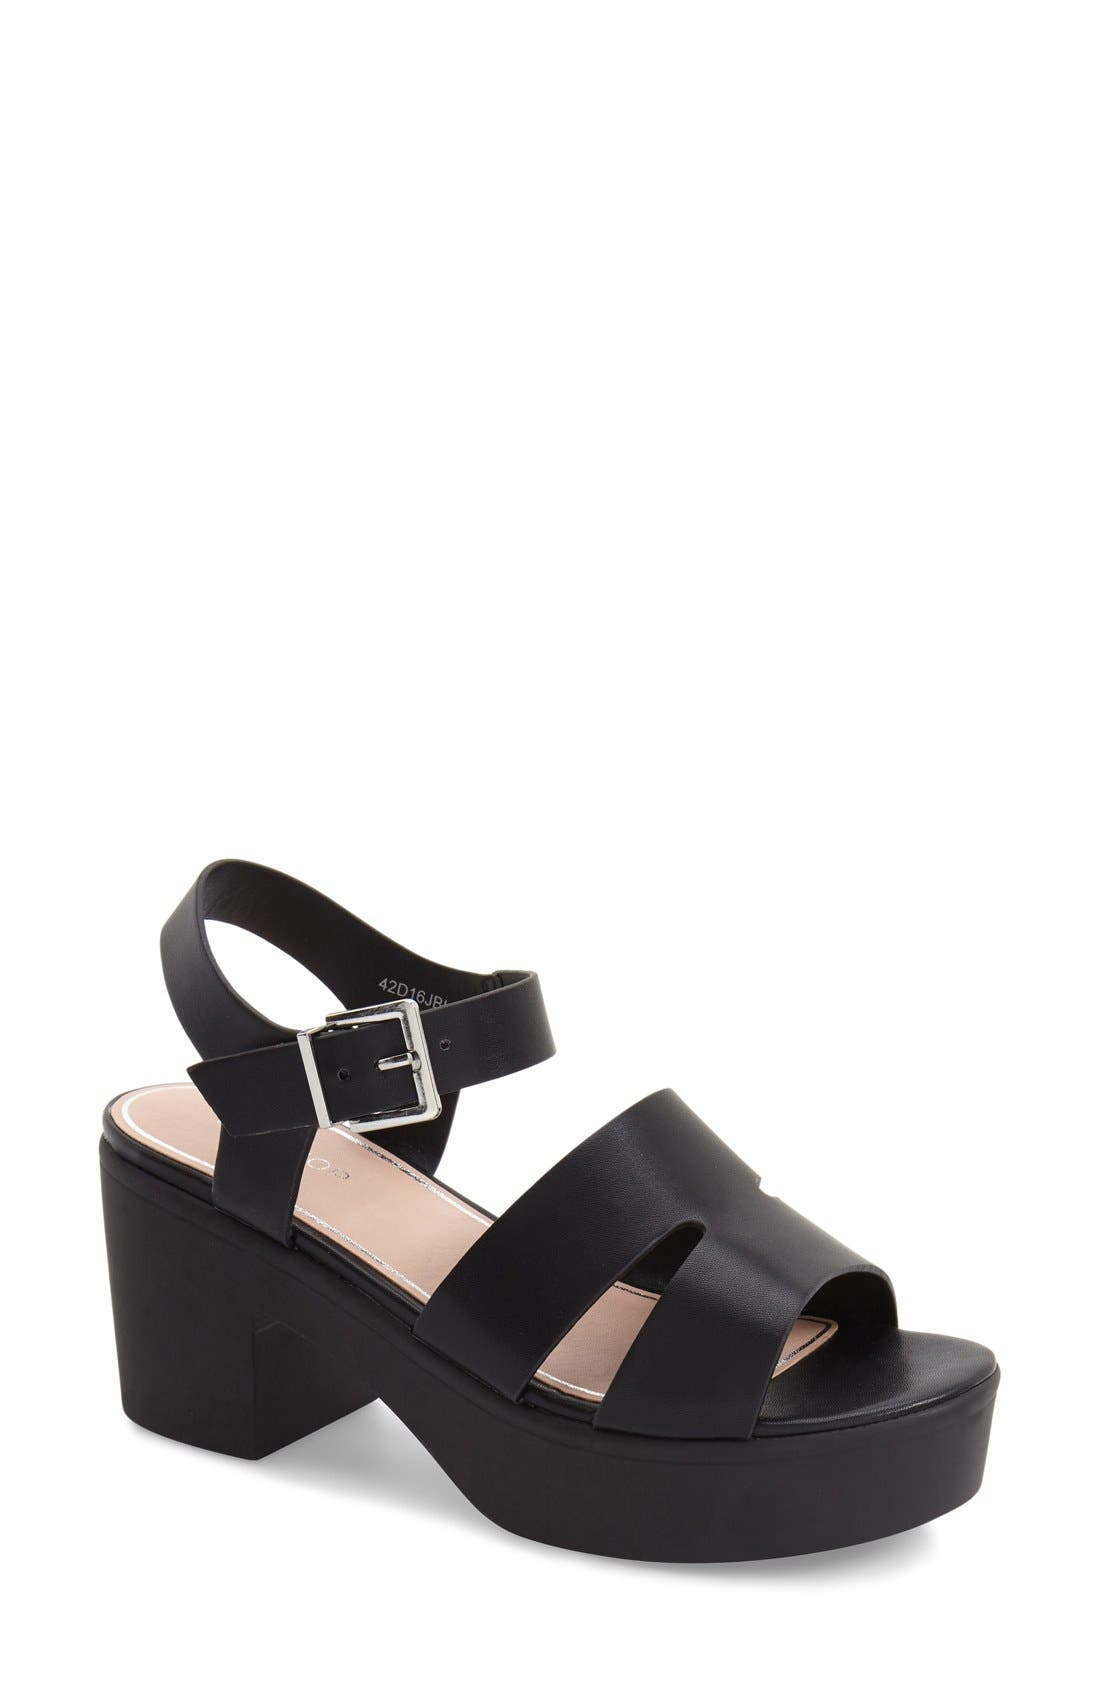 Alternate Image 1 Selected - Topshop 'Den' Platform Sandal (Women)